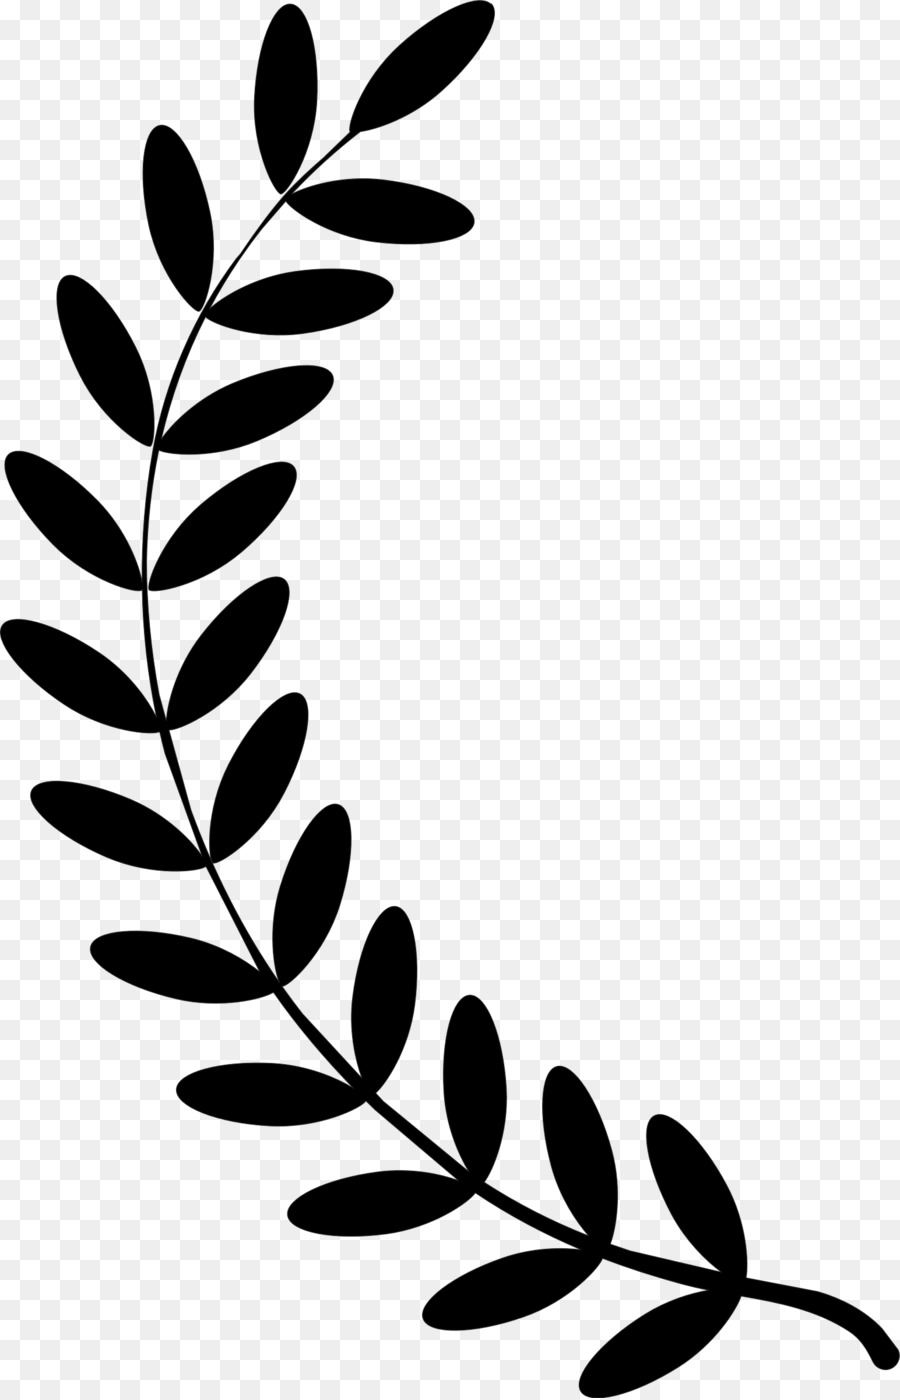 olive branch laurel wreath clip art laurel wreath images png rh kisspng com olive branch clipsham review olive branch clipsham offers